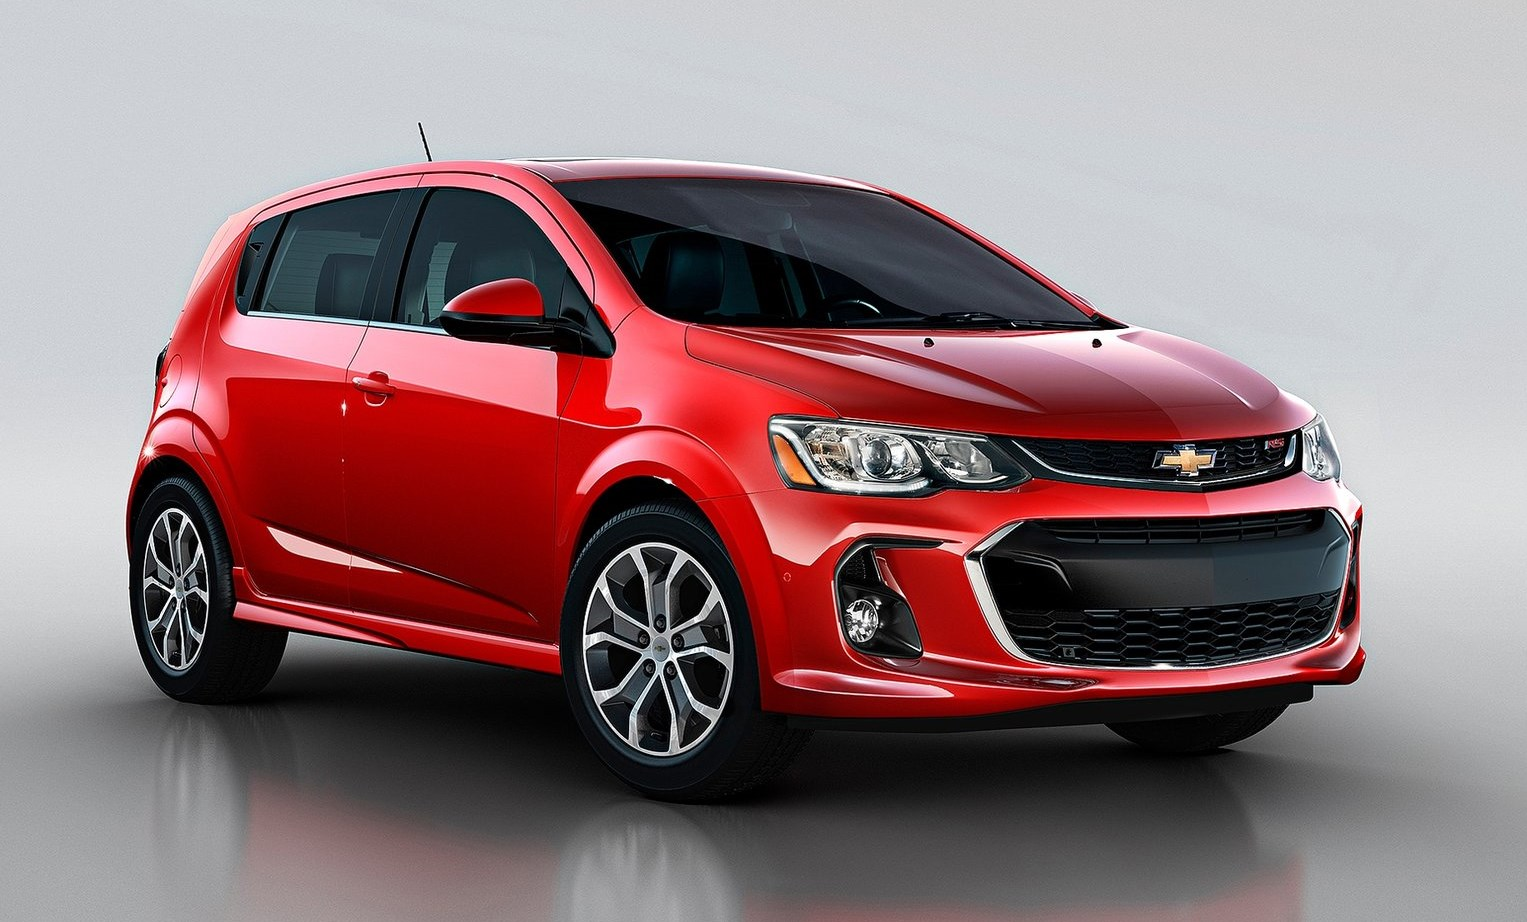 nuevo chevrolet sonic 2017 sed n y hatchback automotiva. Black Bedroom Furniture Sets. Home Design Ideas